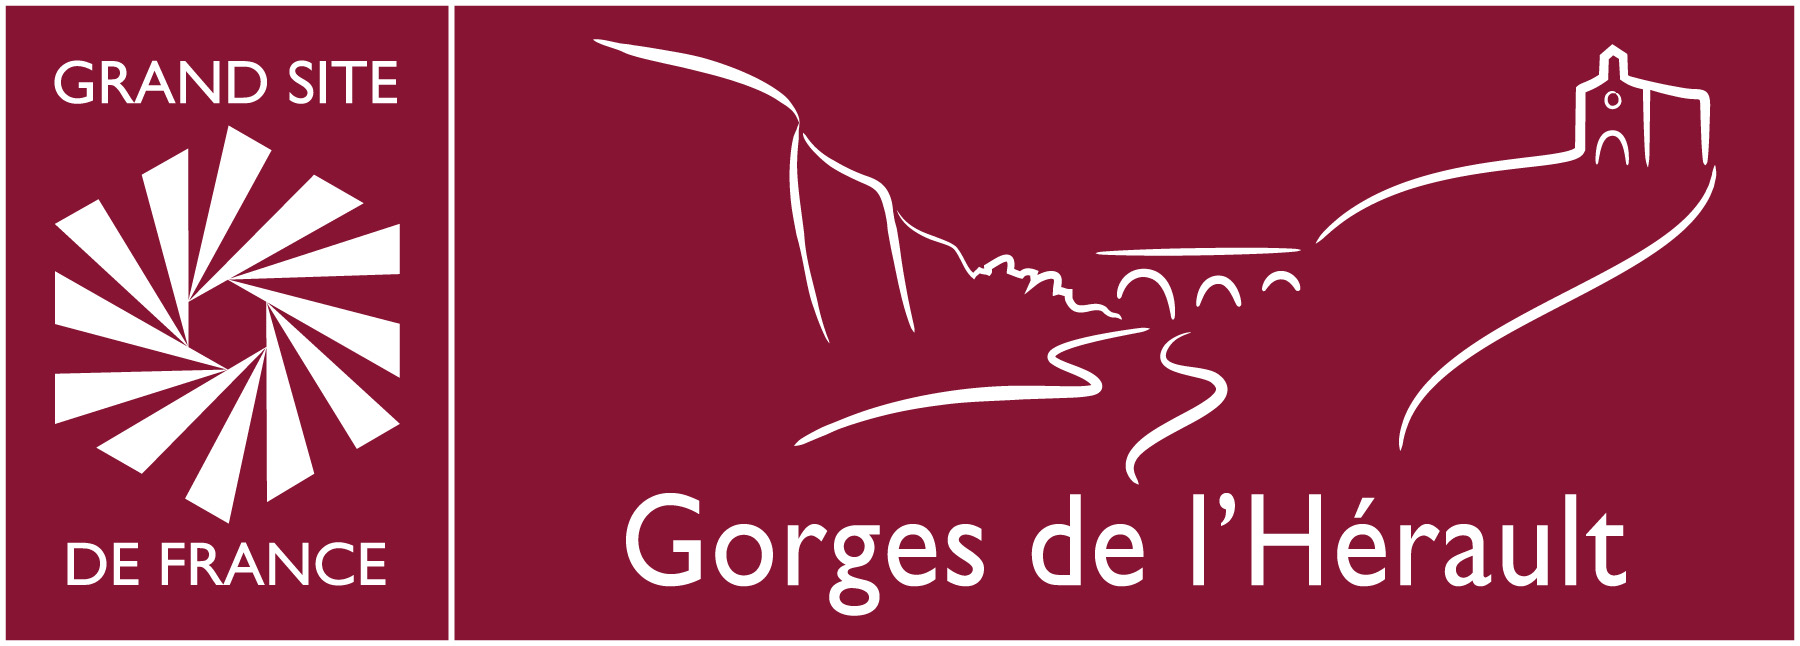 cartouche gorges herault rvb